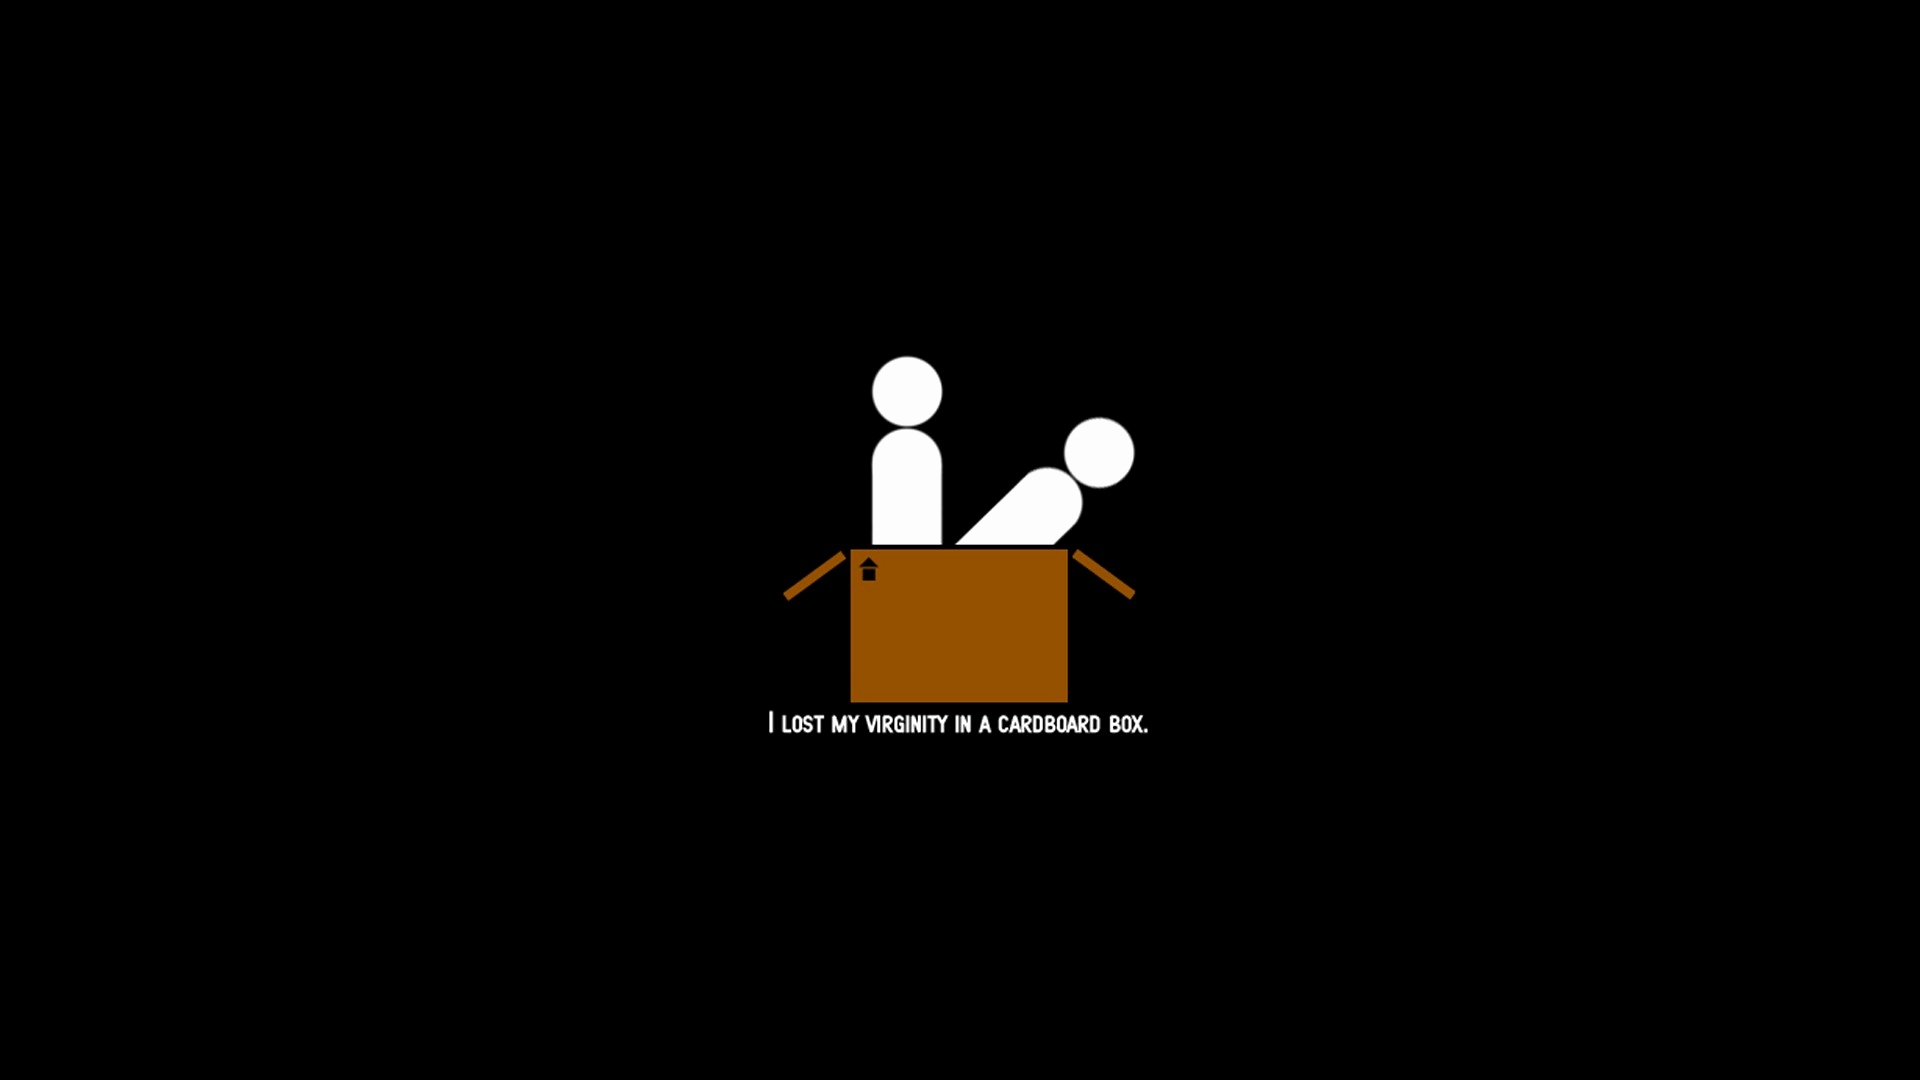 Free Download Download Funny Laptop Wallpapers 61 Wallpaper For Your 1920x1080 For Your Desktop Mobile Tablet Explore 61 Wallpapers Funny Pictures Funny Desktop Wallpaper Funny Facebook Wallpapers Funny Wallpaper Pictures With Sayings